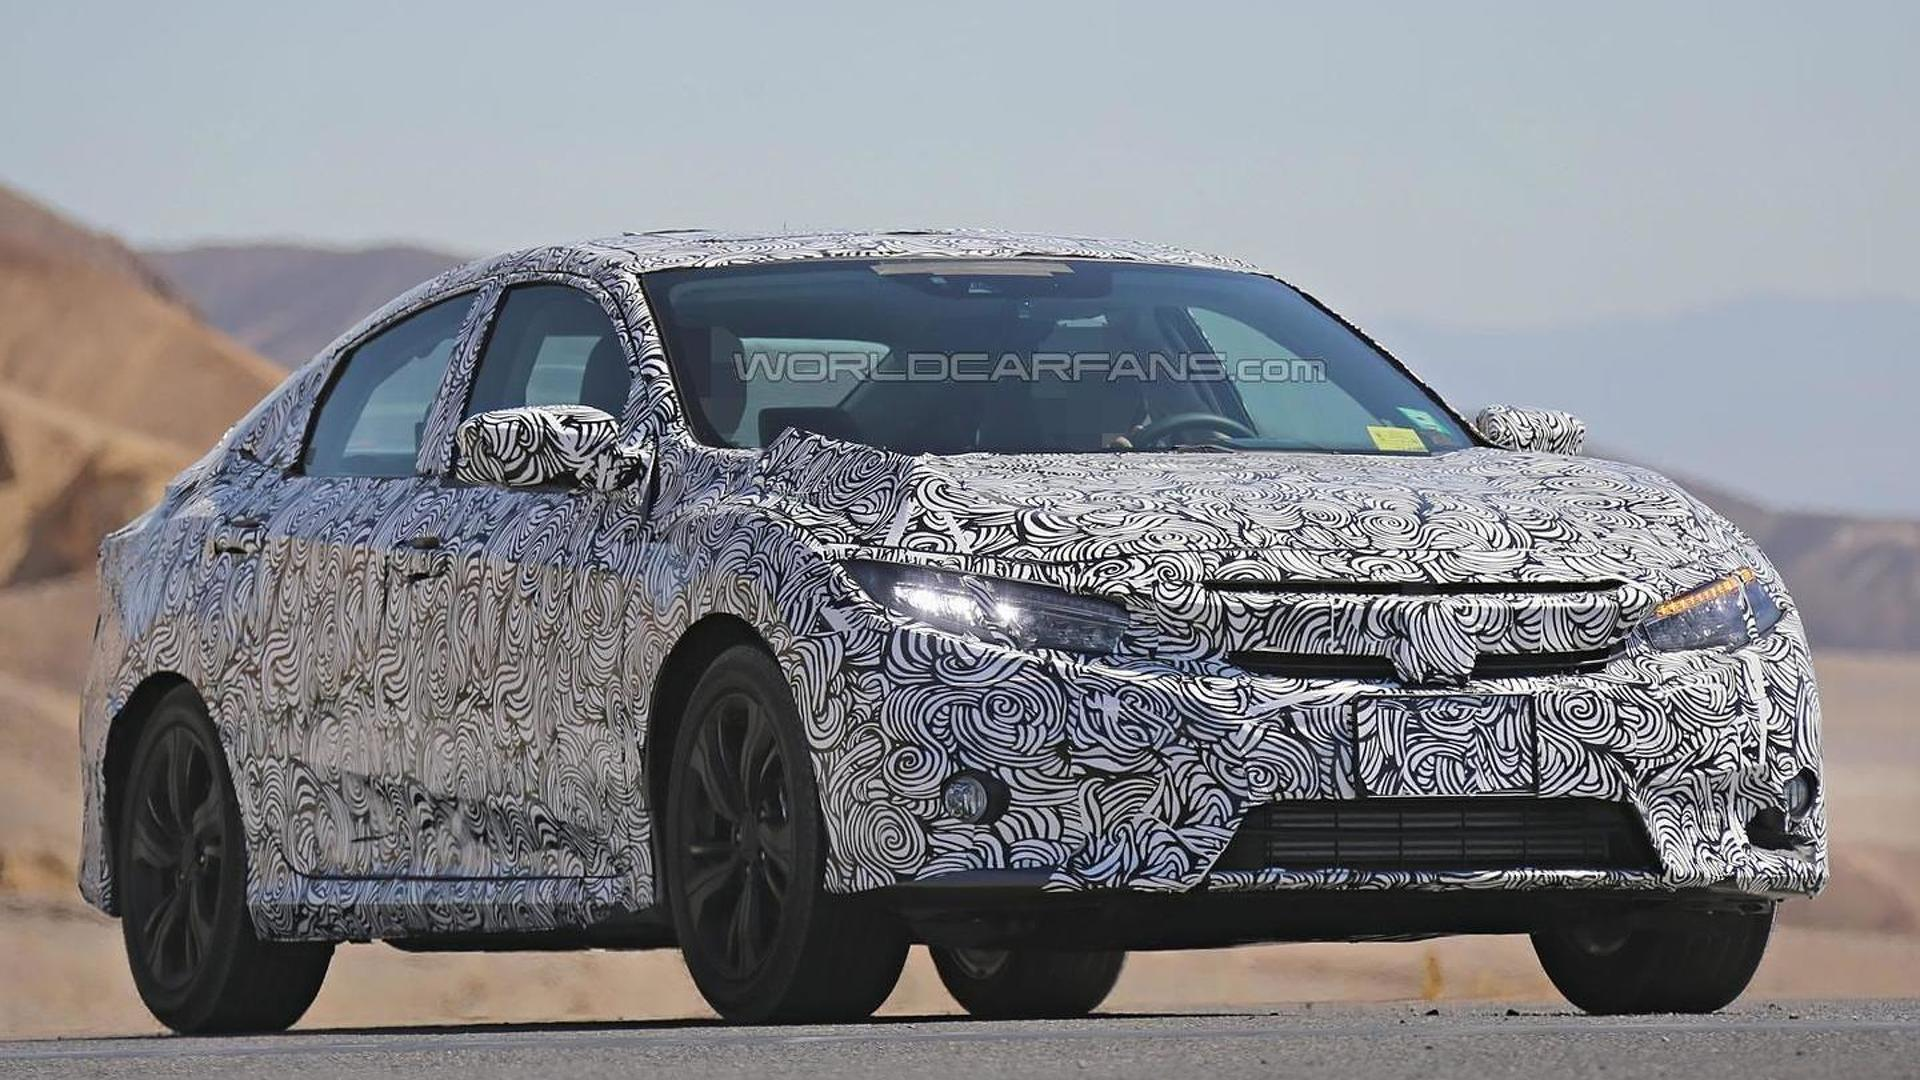 2017 Honda Civic Spied Inside And Out With Full Led Headlights Heated Rear Seats 45 Pics